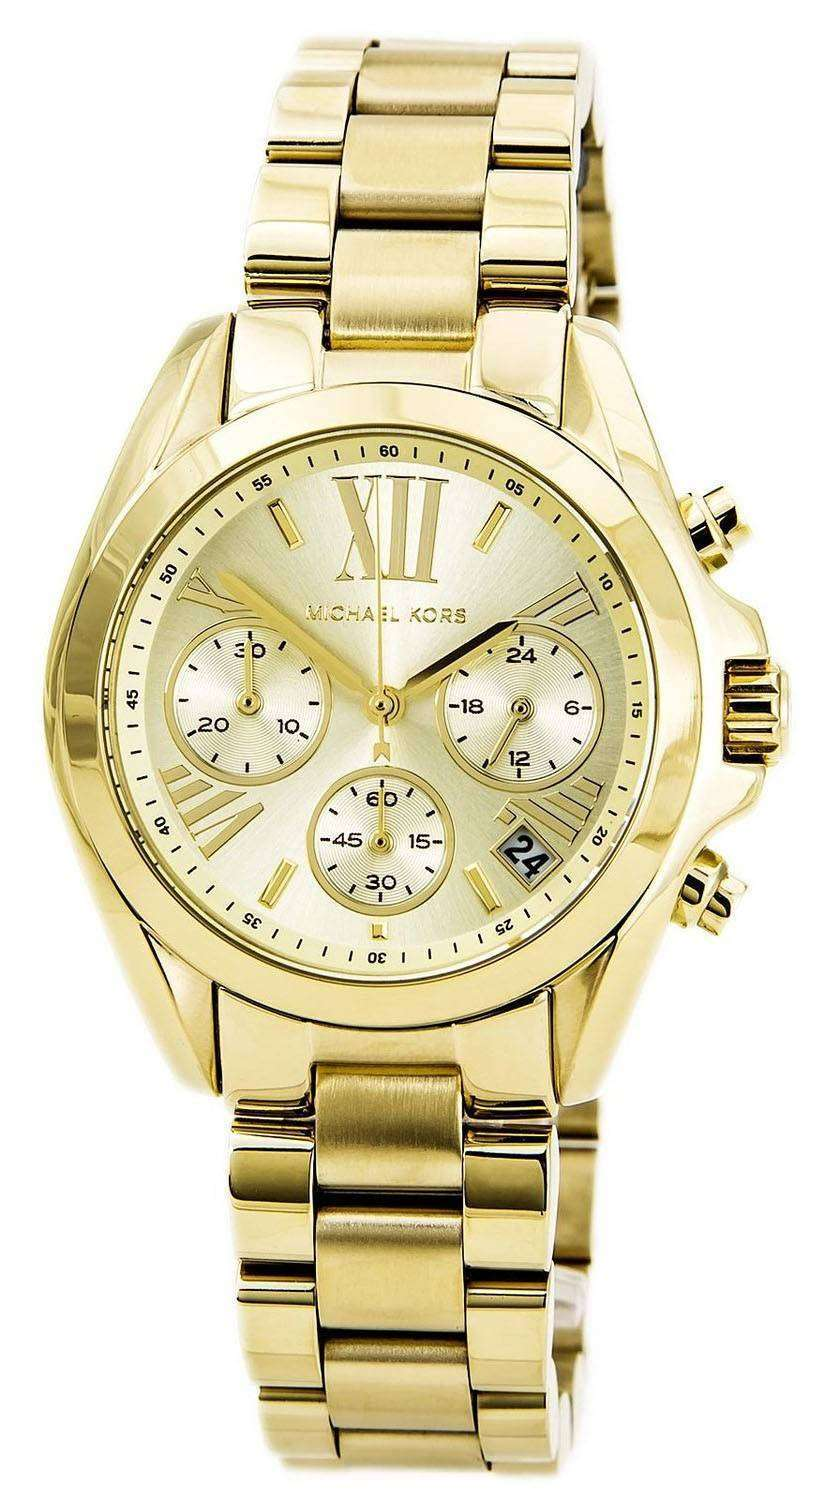 SHOPBOP - MICHAEL Michael Kors FASTEST FREE SHIPPING WORLDWIDE on MICHAEL Michael Kors & FREE EASY RETURNS.